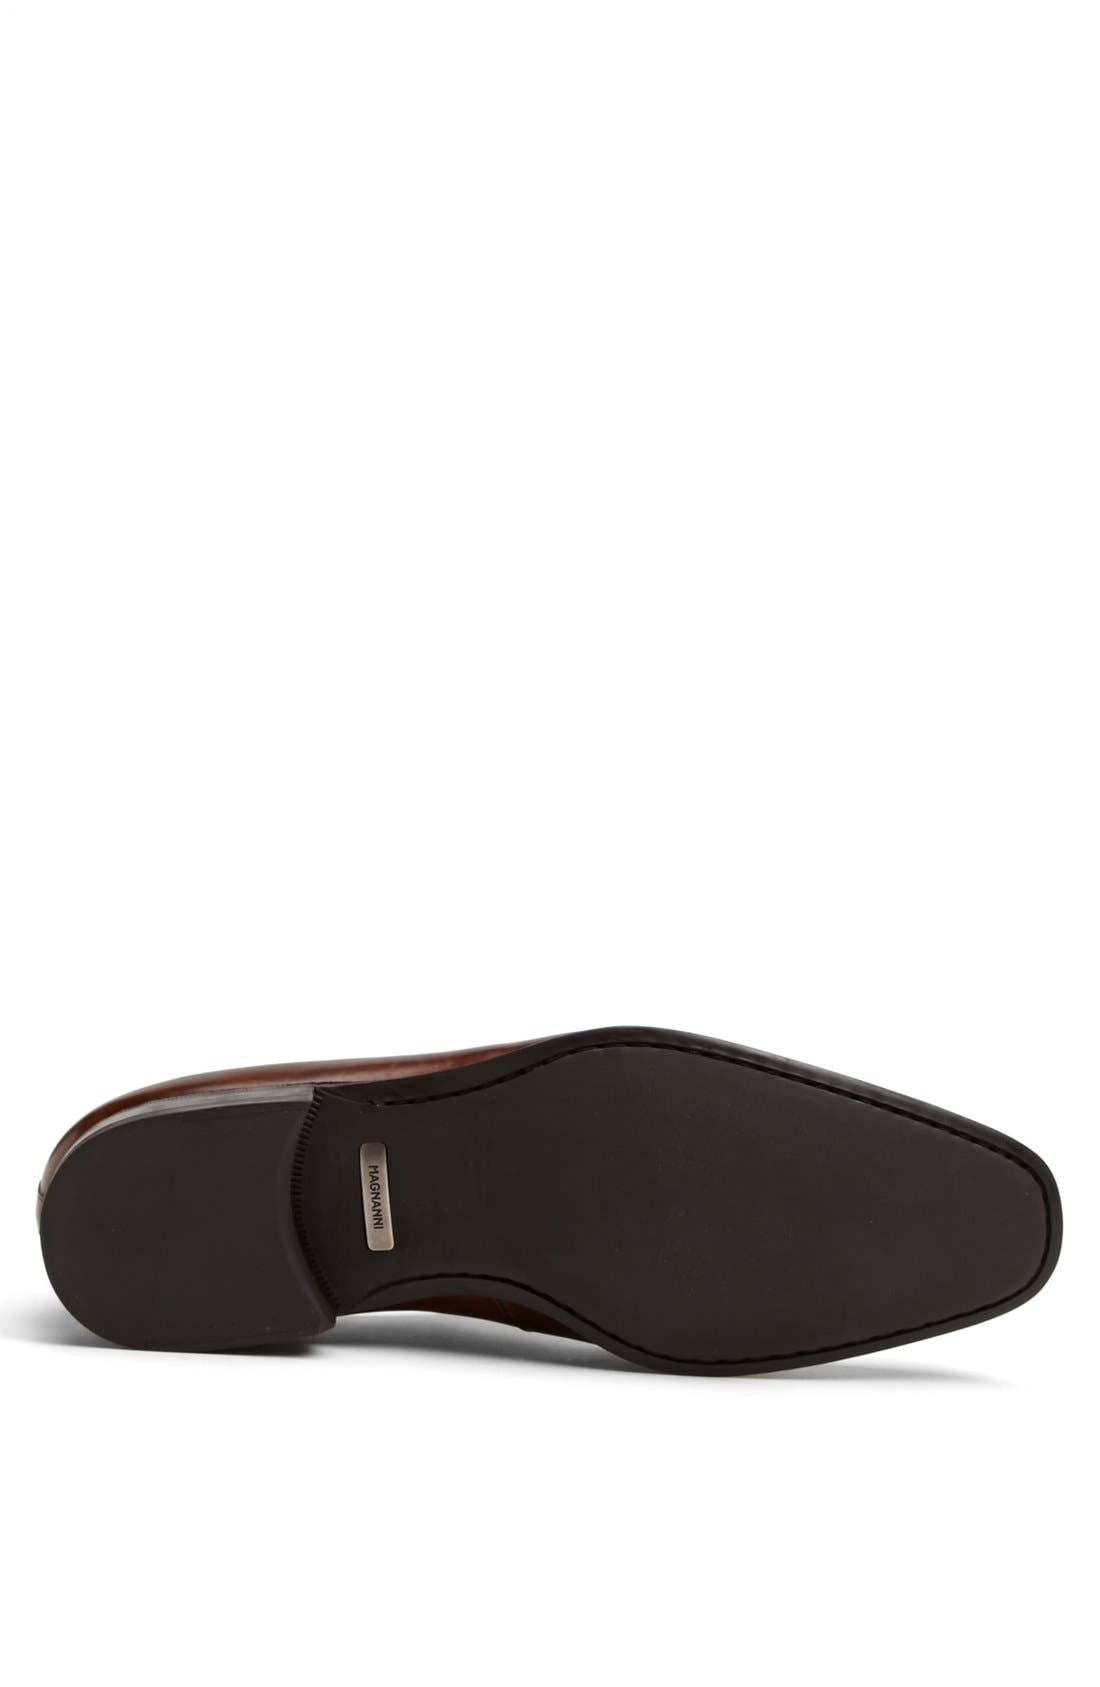 Alternate Image 4  - Magnanni 'Leo' Venetian Loafer